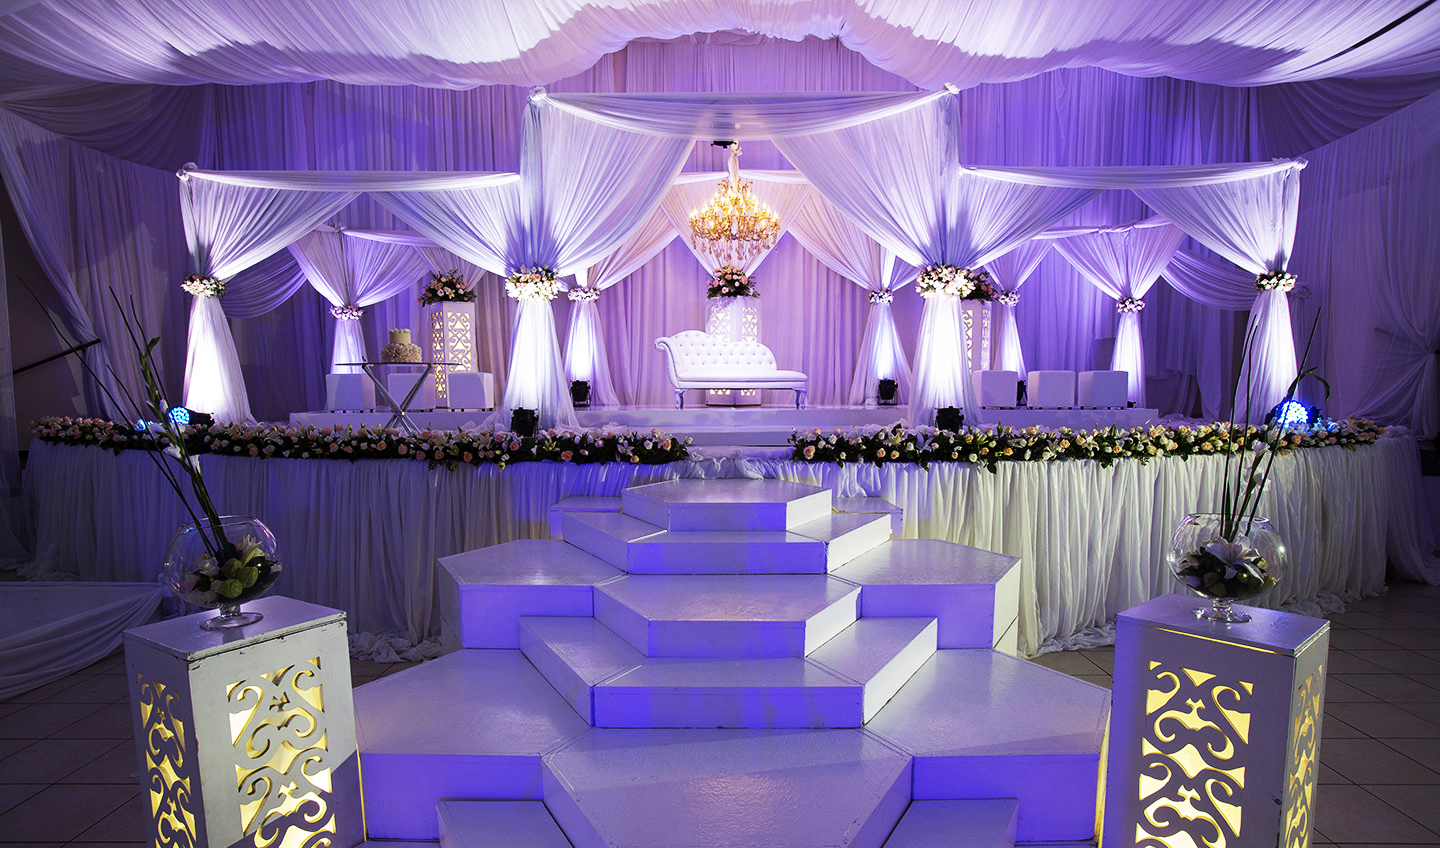 Designer weddings koogan pillay wedding decor durban for Muslim wedding home decorations